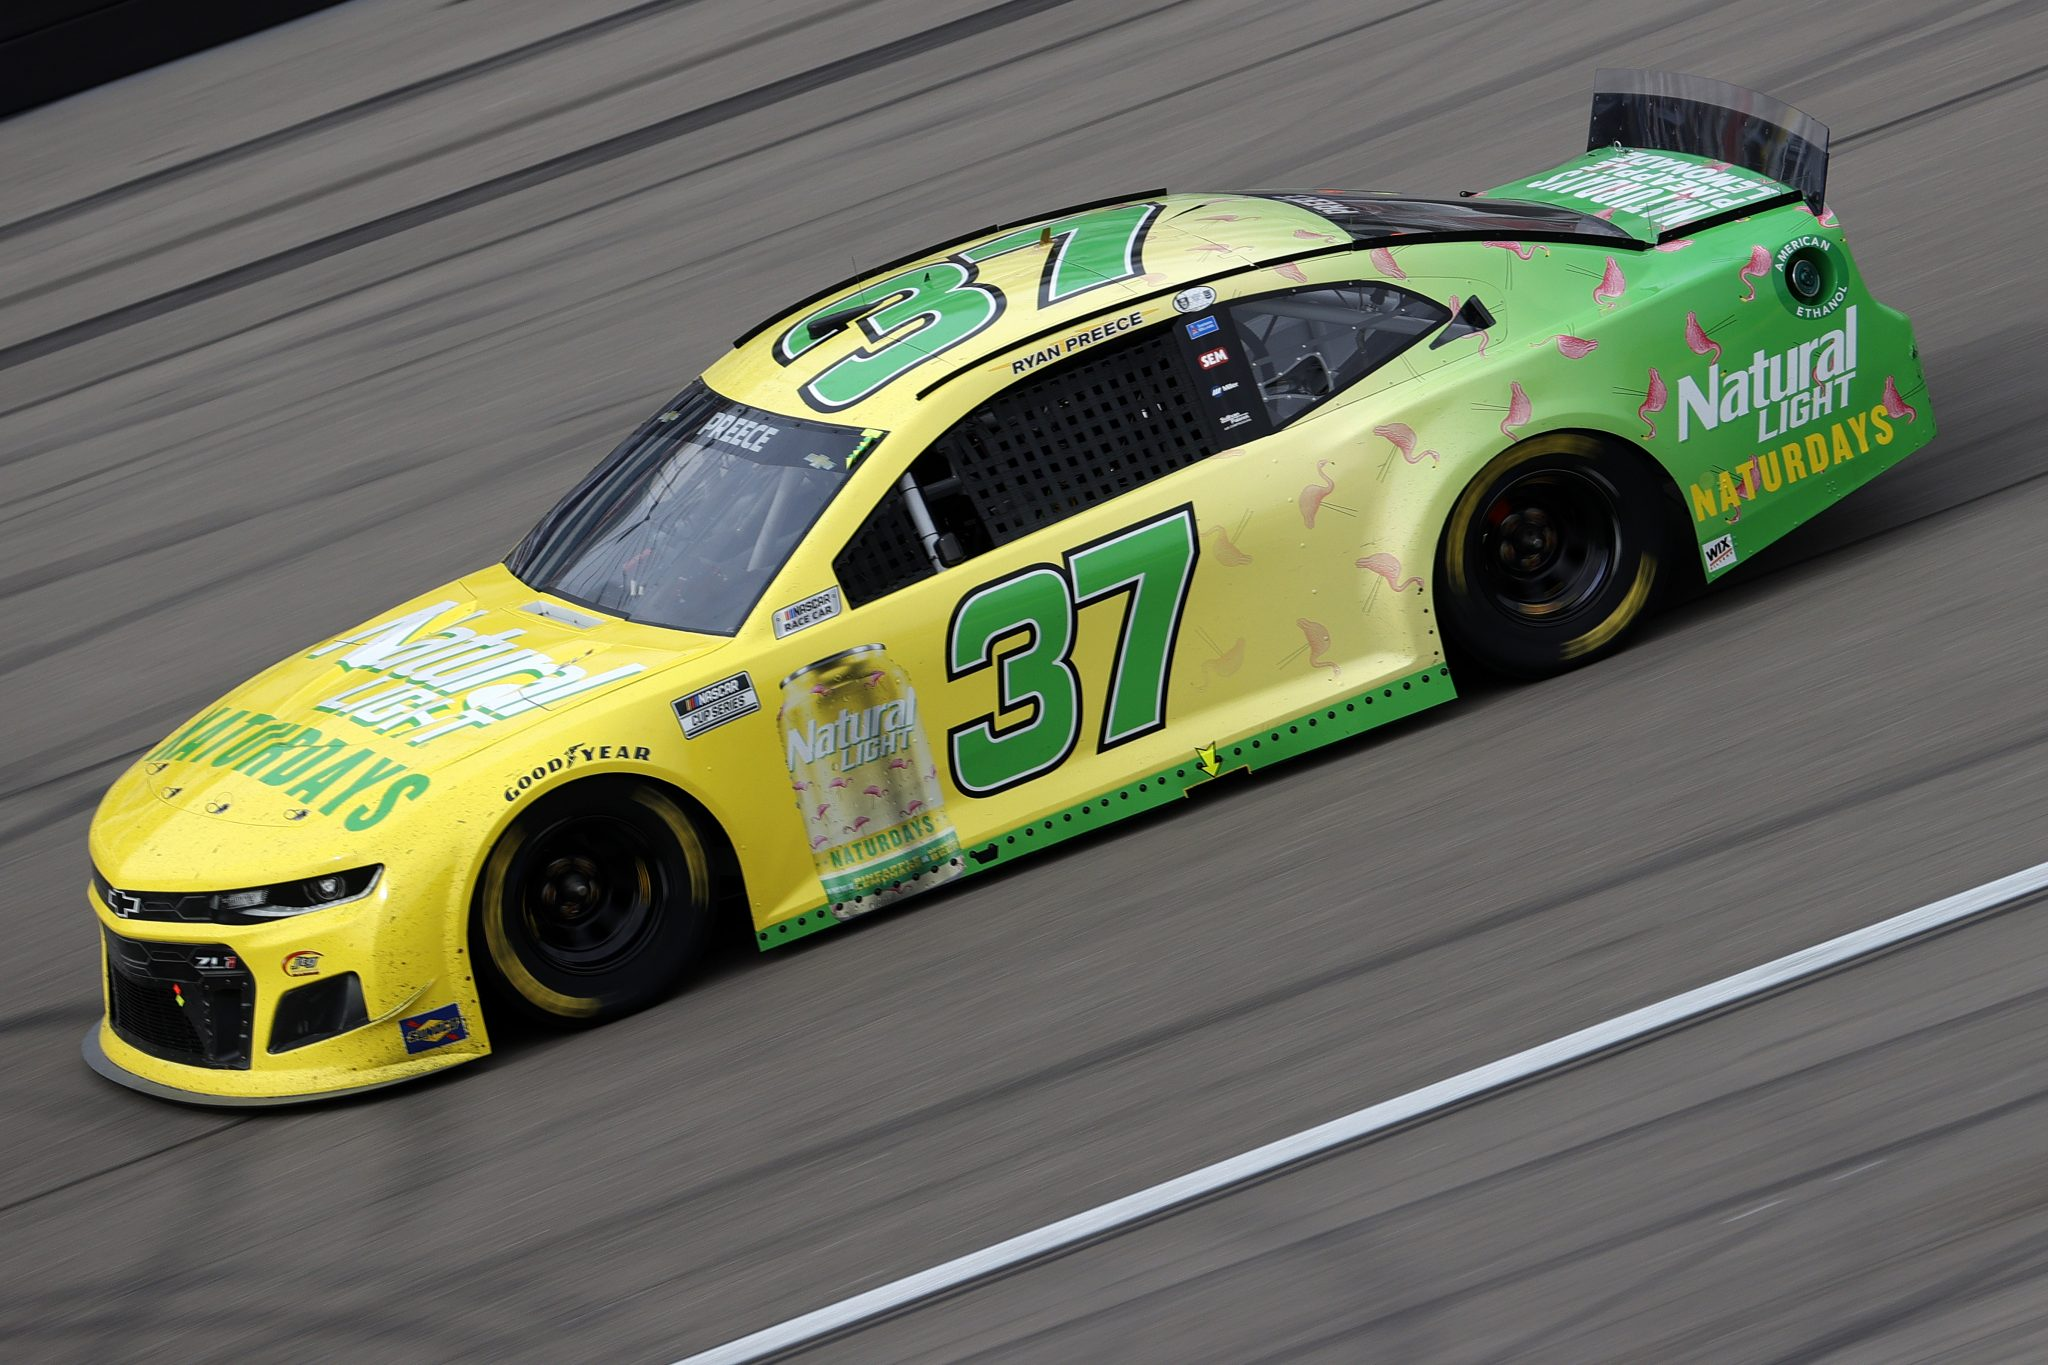 LAS VEGAS, NEVADA - MARCH 07: Ryan Preece, driver of the #37 Natural Light Naturdays Chevrolet, drives during the NASCAR Cup Series Pennzoil 400 presented by Jiffy Lube at the Las Vegas Motor Speedway on March 07, 2021 in Las Vegas, Nevada. (Photo by Chris Graythen/Getty Images) | Getty Images